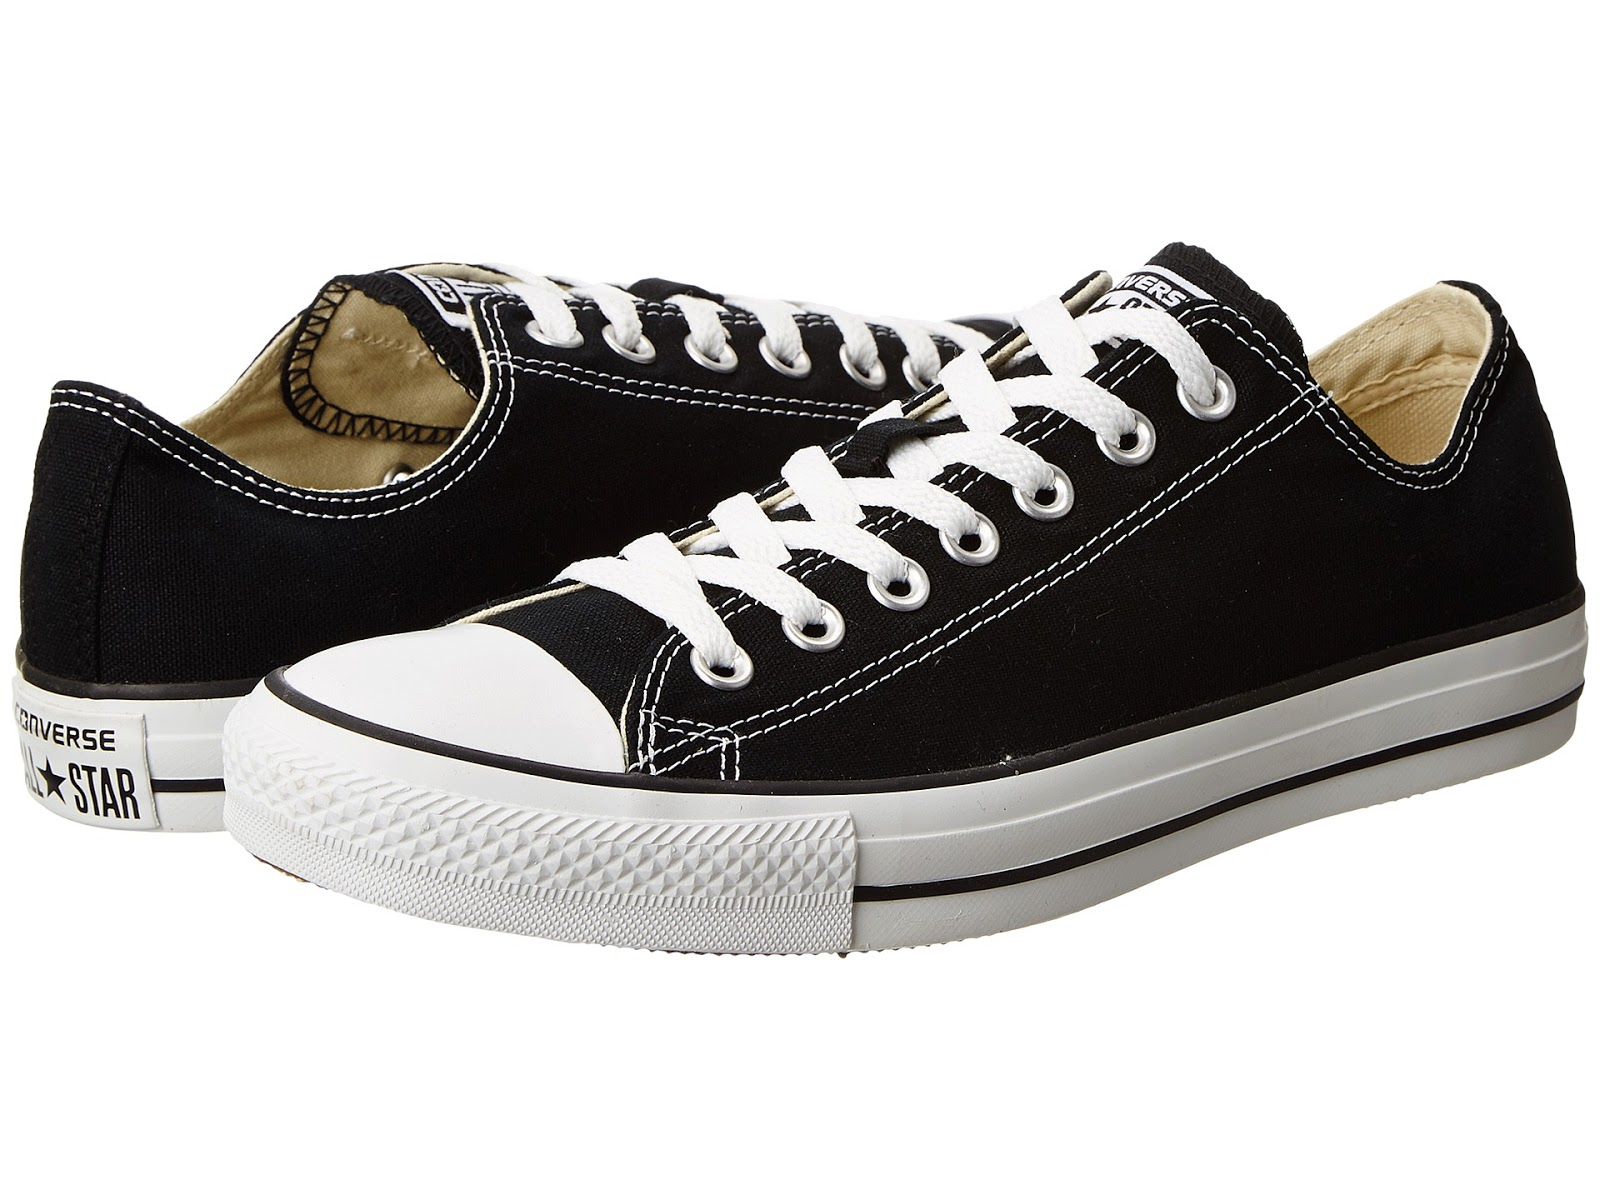 All Star Shoes Black Friday